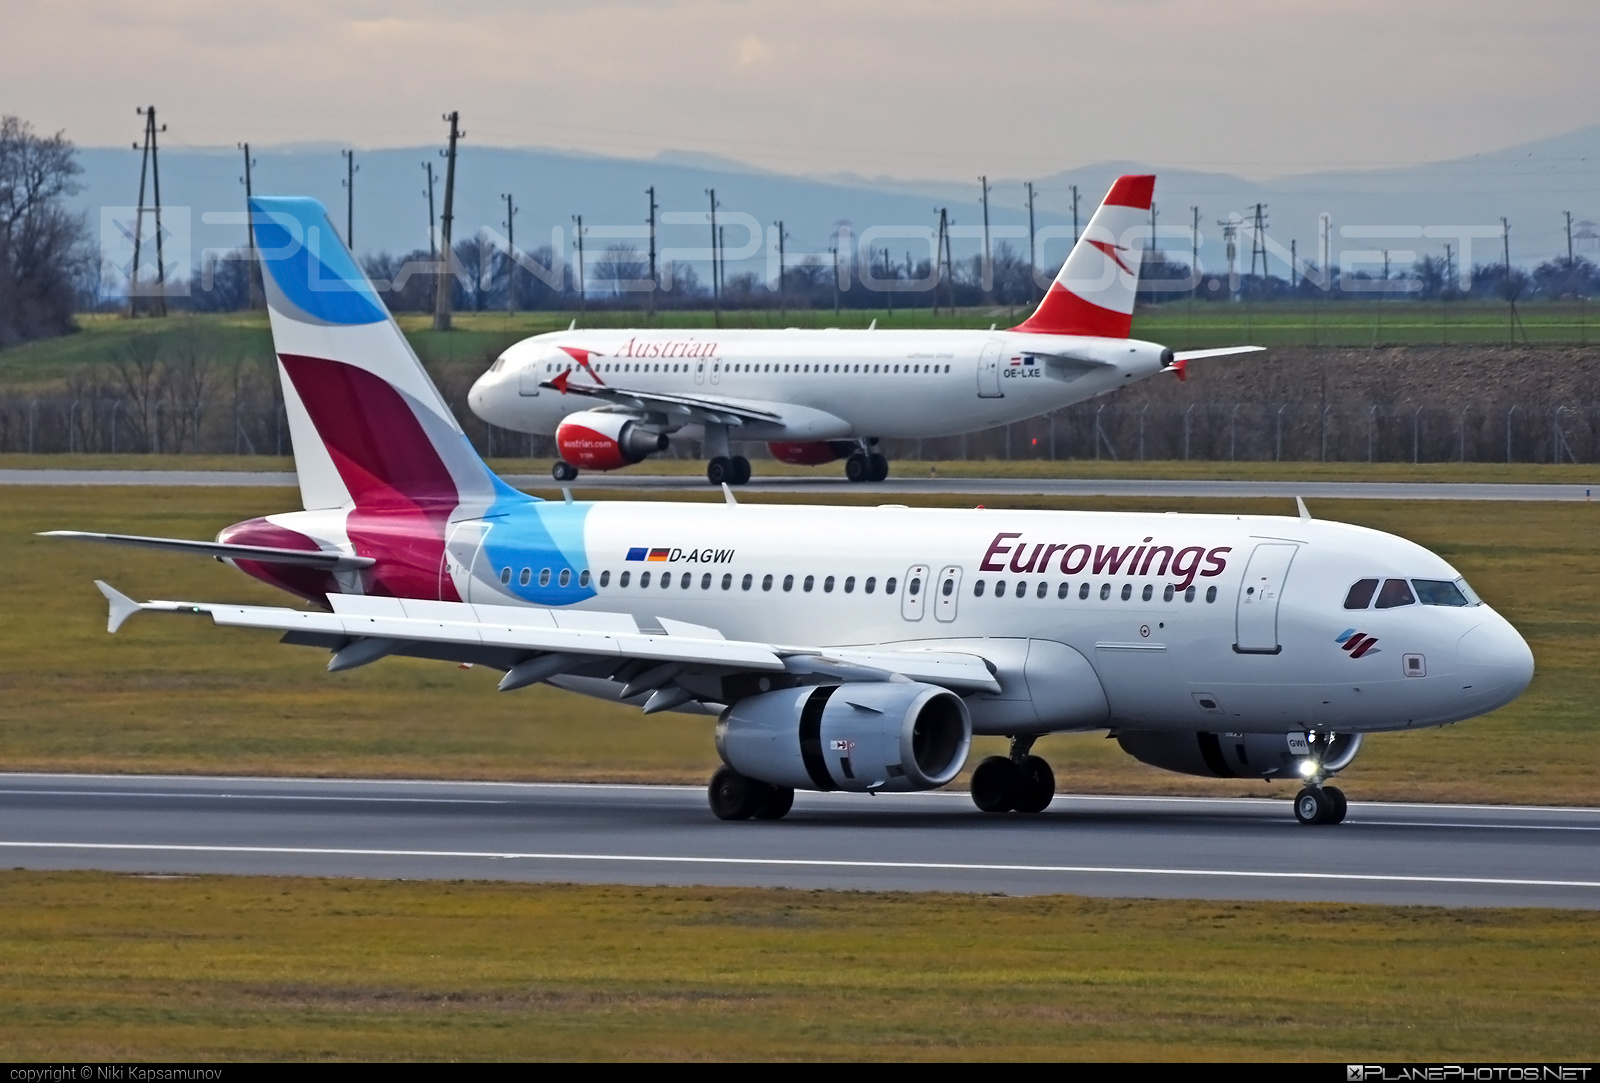 Airbus A319-132 - D-AGWI operated by Eurowings #a319 #a320family #airbus #airbus319 #eurowings